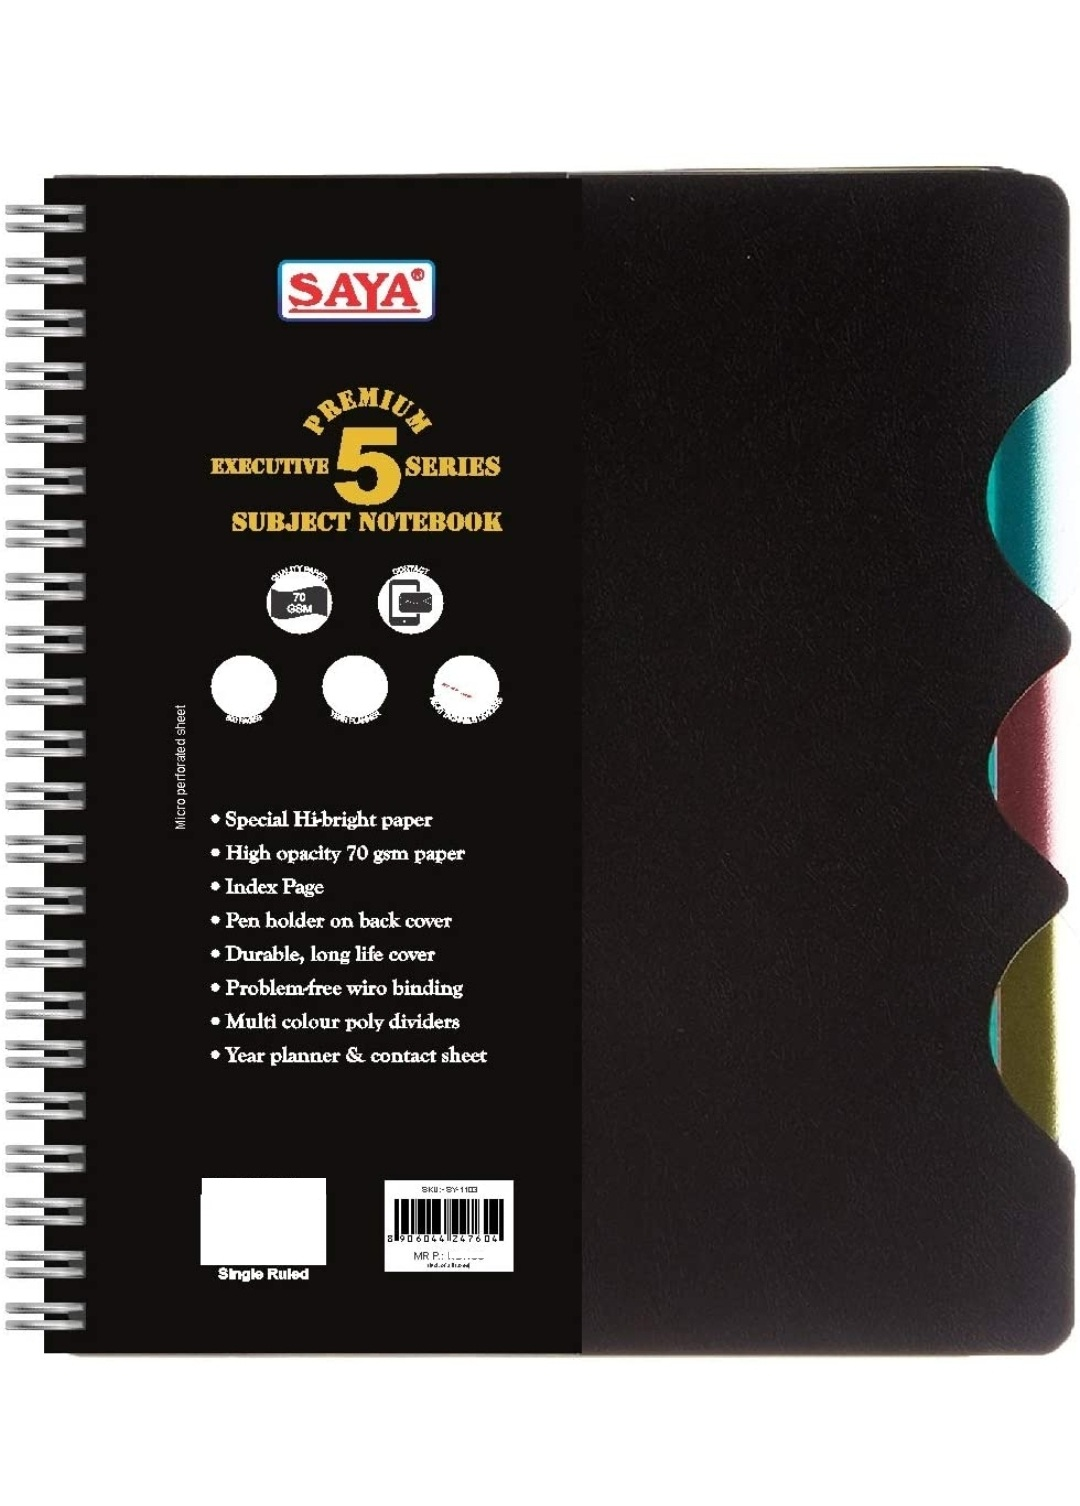 Saya Premium 5 Subject, Spiral Note Book, Executive Series, Single Line, 300 Pages, 25 X 17.6 cm, Pack of 1